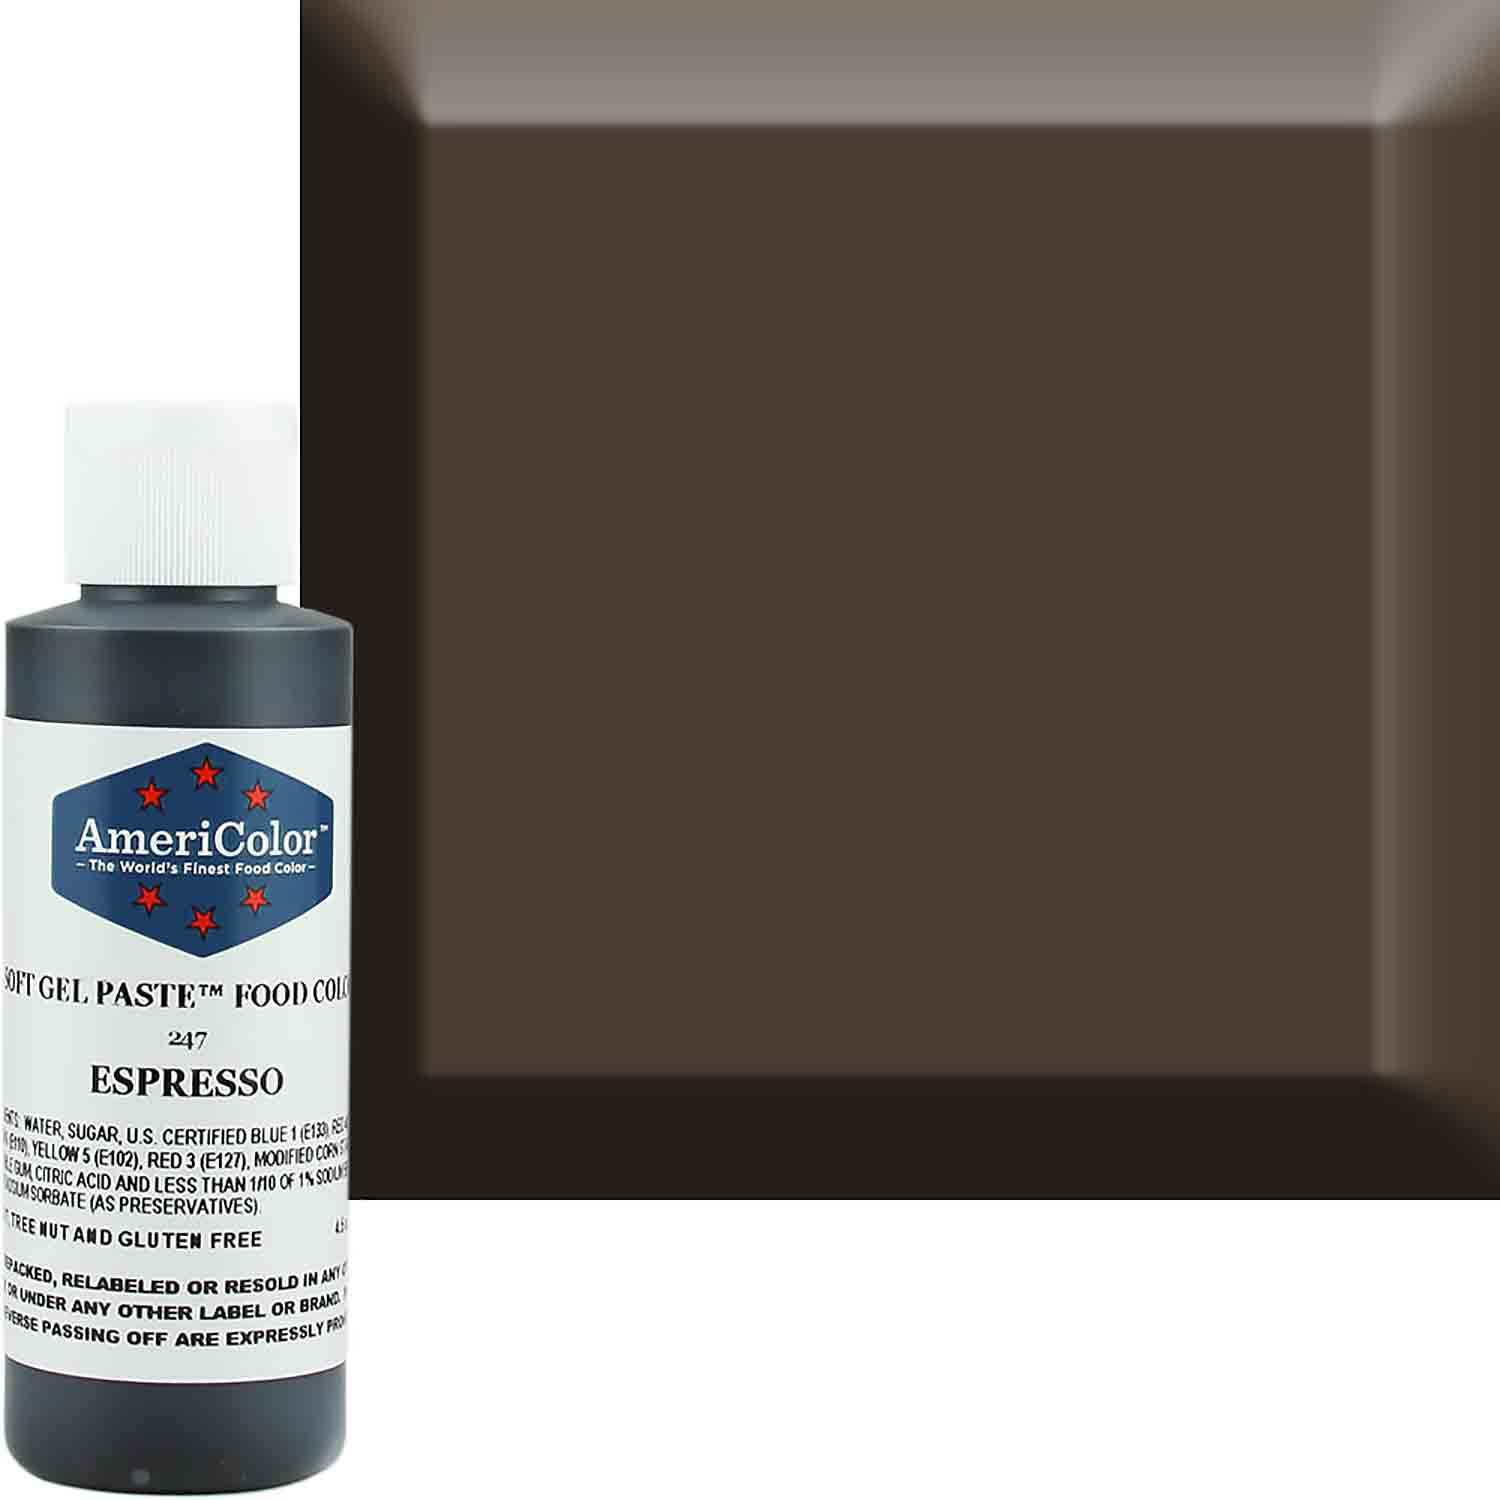 Espresso AmeriColor® Soft Gel Paste™ Food Color